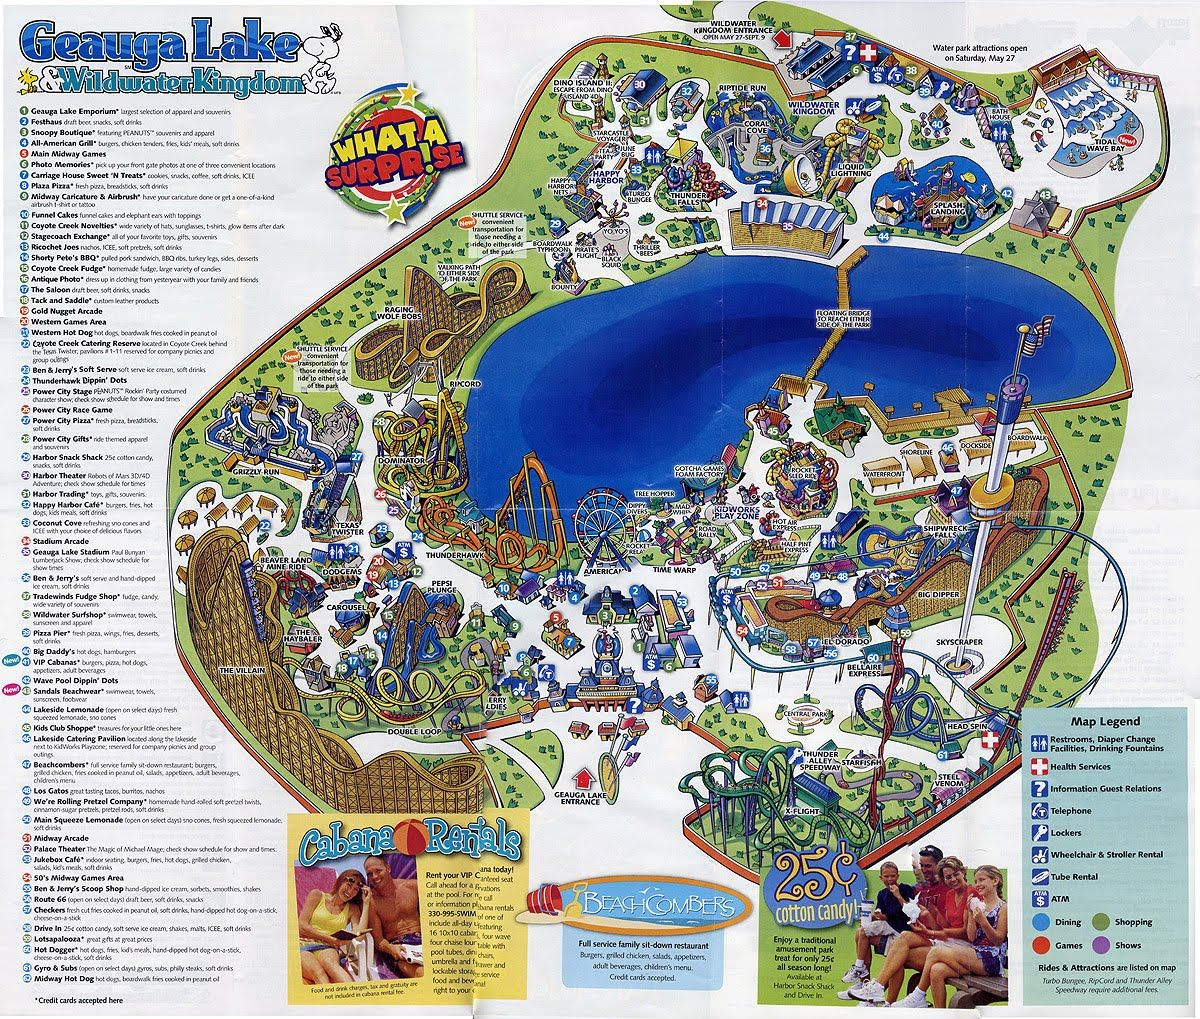 Geauga Lake abandoned amusement park maps Pinterest Amusement